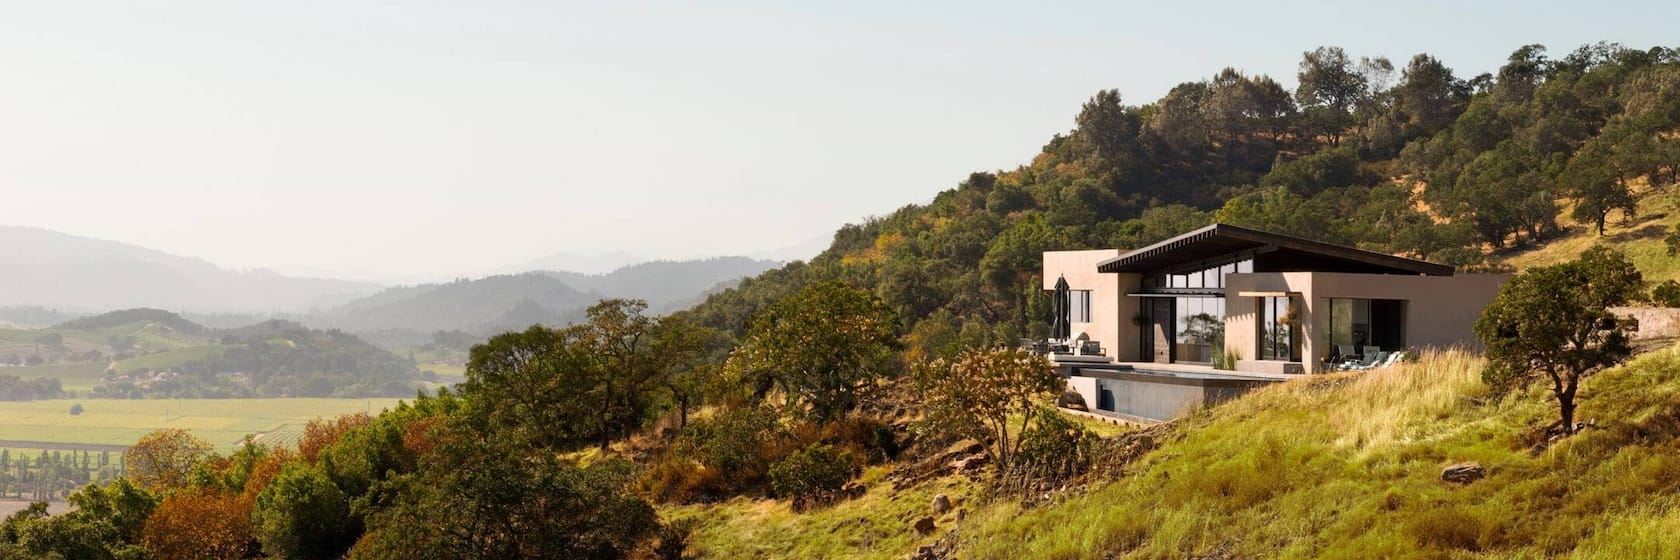 Luxury rentals in Napa